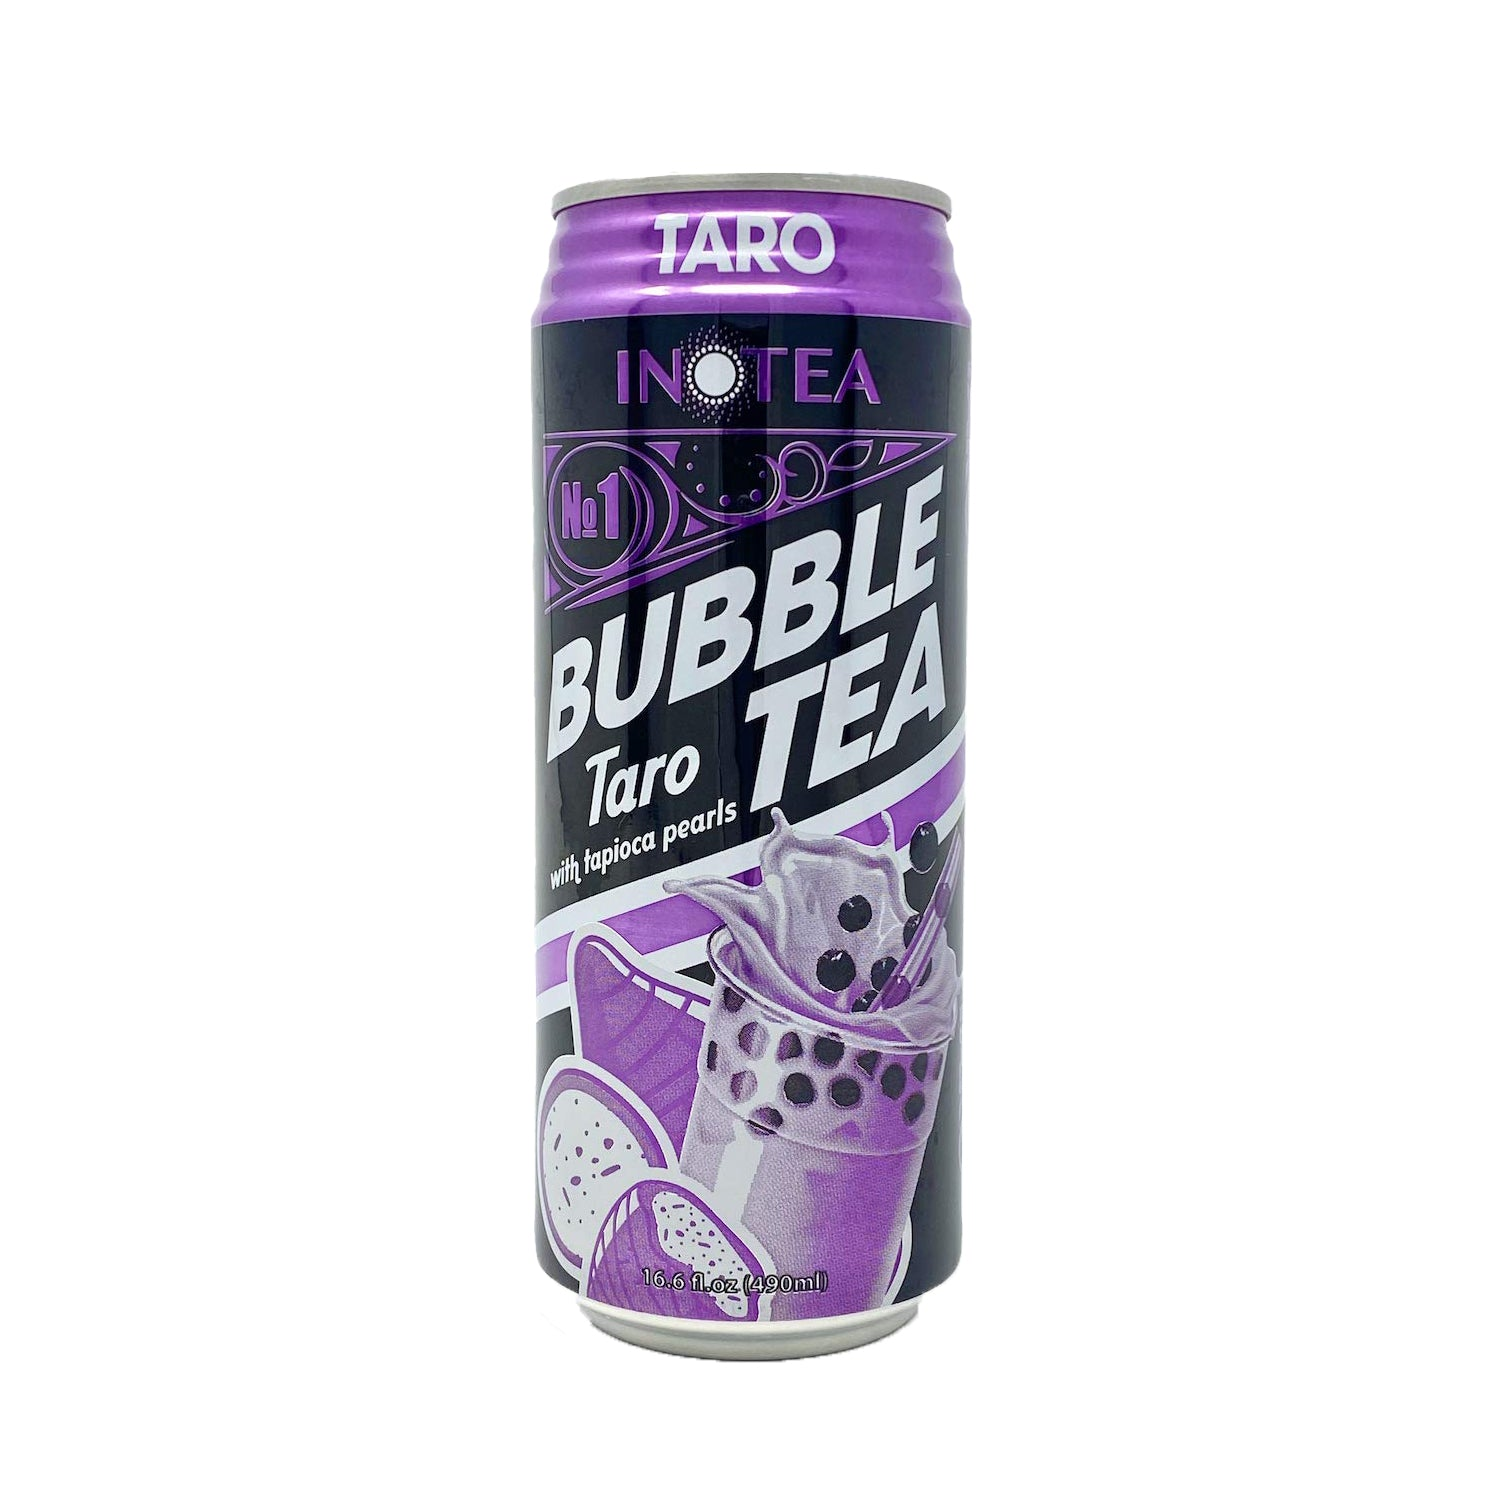 Inotea Taro Bubble Tea Drink 16.6oz